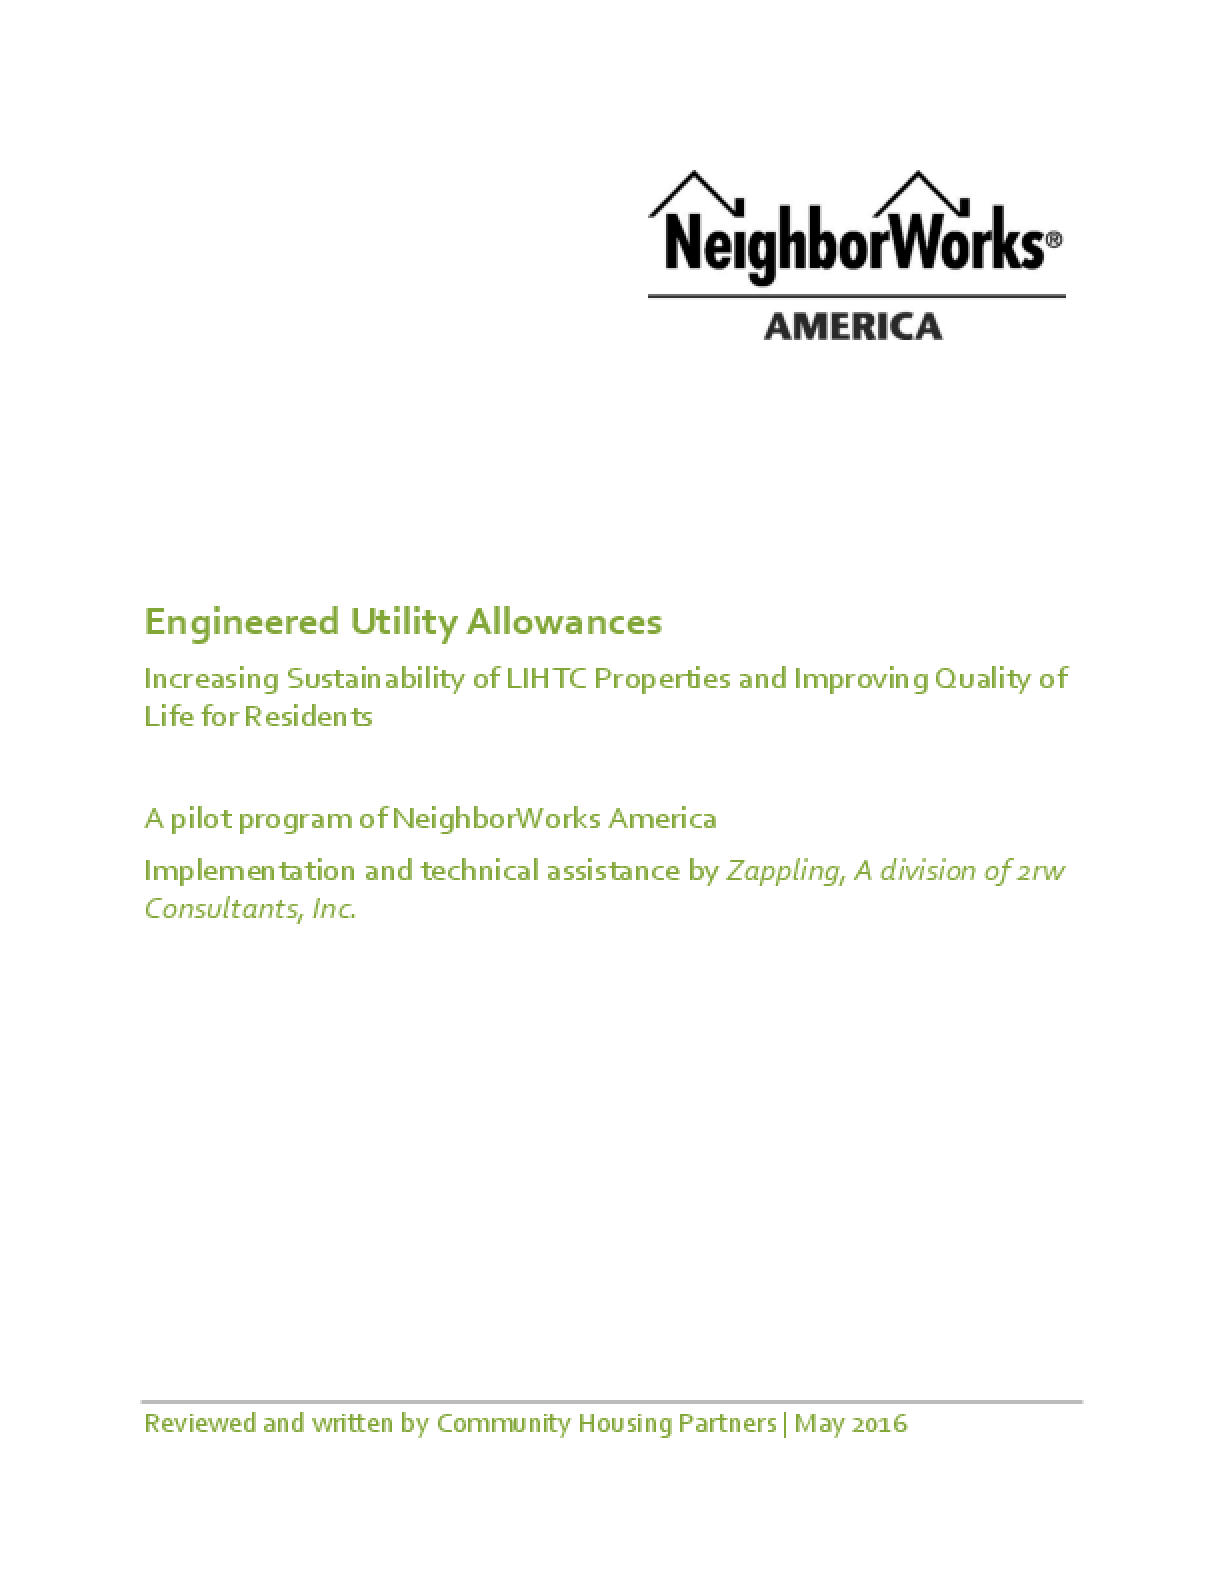 Engineered Utility Allowances: Increasing Sustainability of LIHTC Properties and Improving Quality of Life for Residents